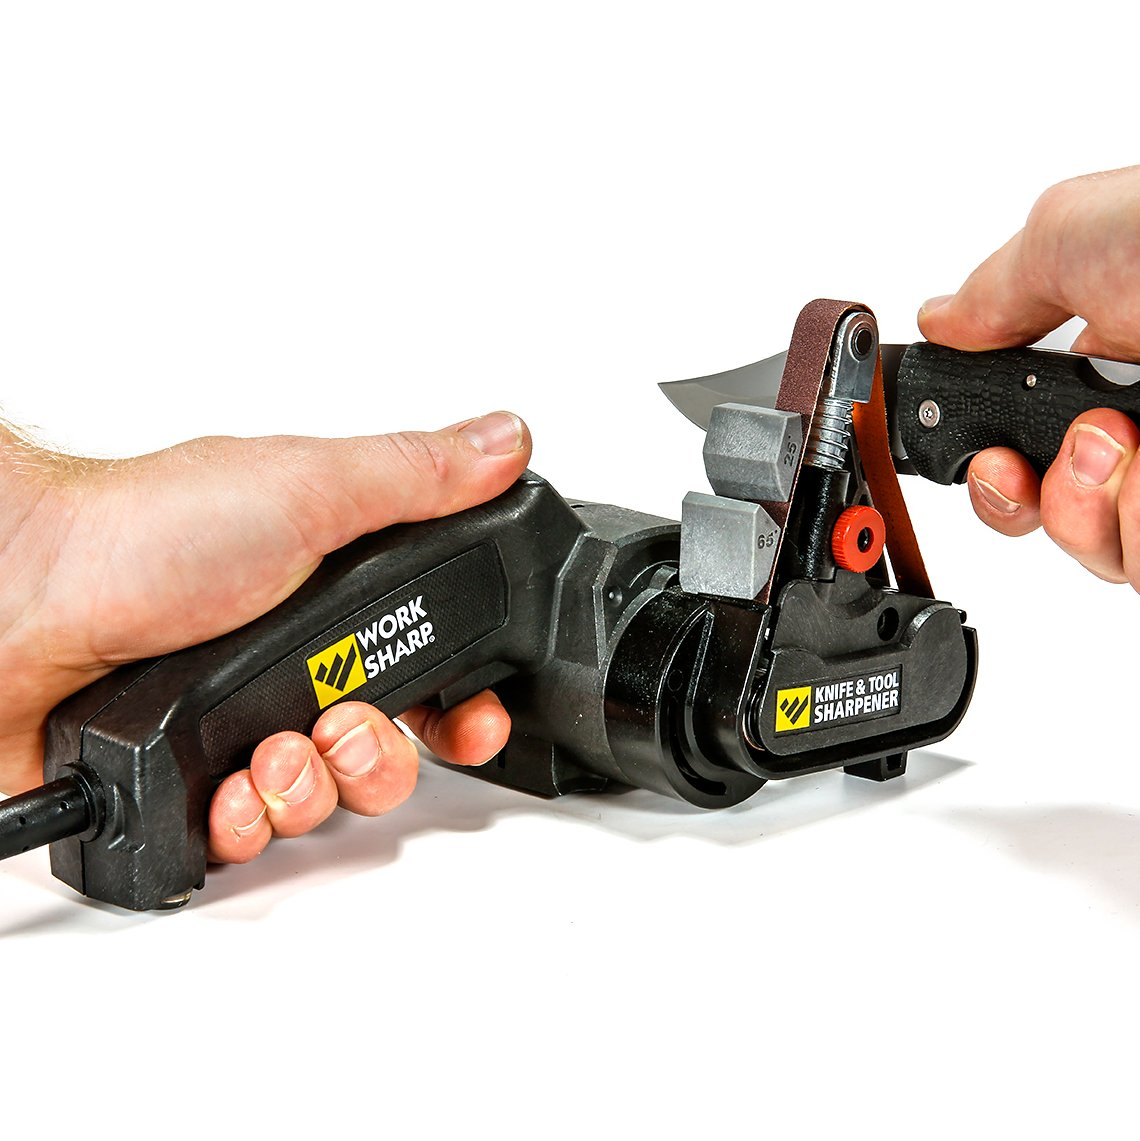 Work Sharp Knife & Tool Sharpener - Fast, Easy, Repeatable, Consistent Results by Work Sharp (Image #3)